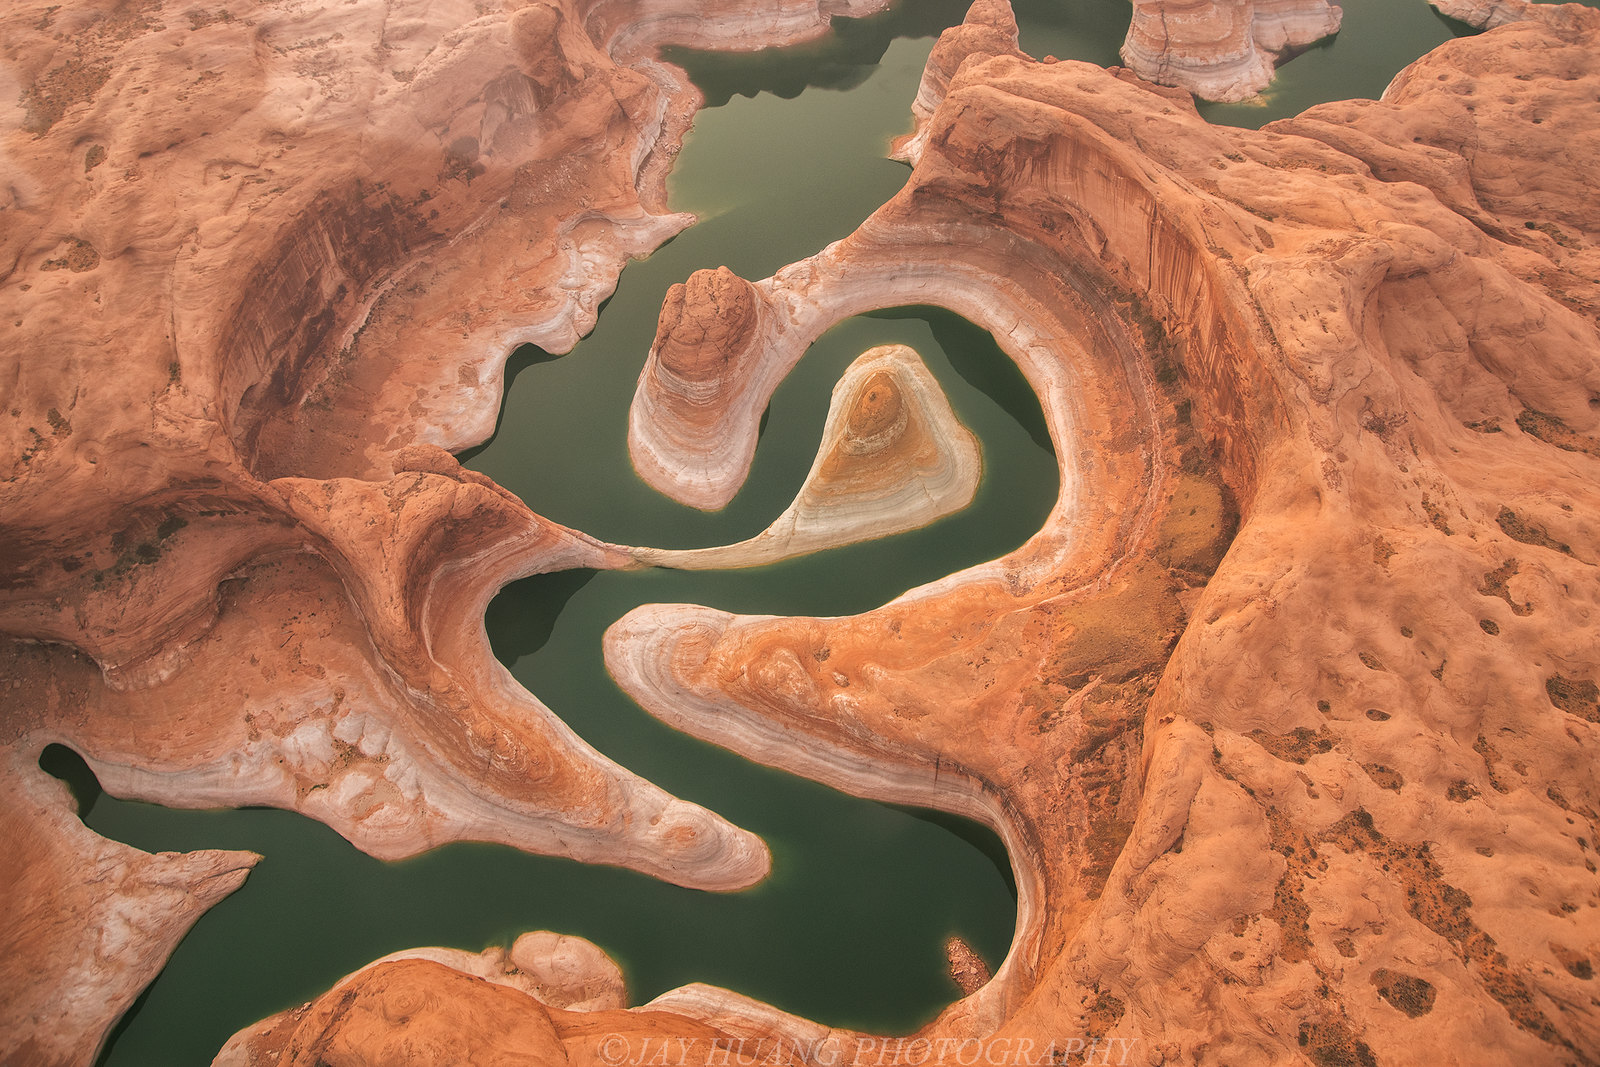 Aerial view of Reflection Canyon